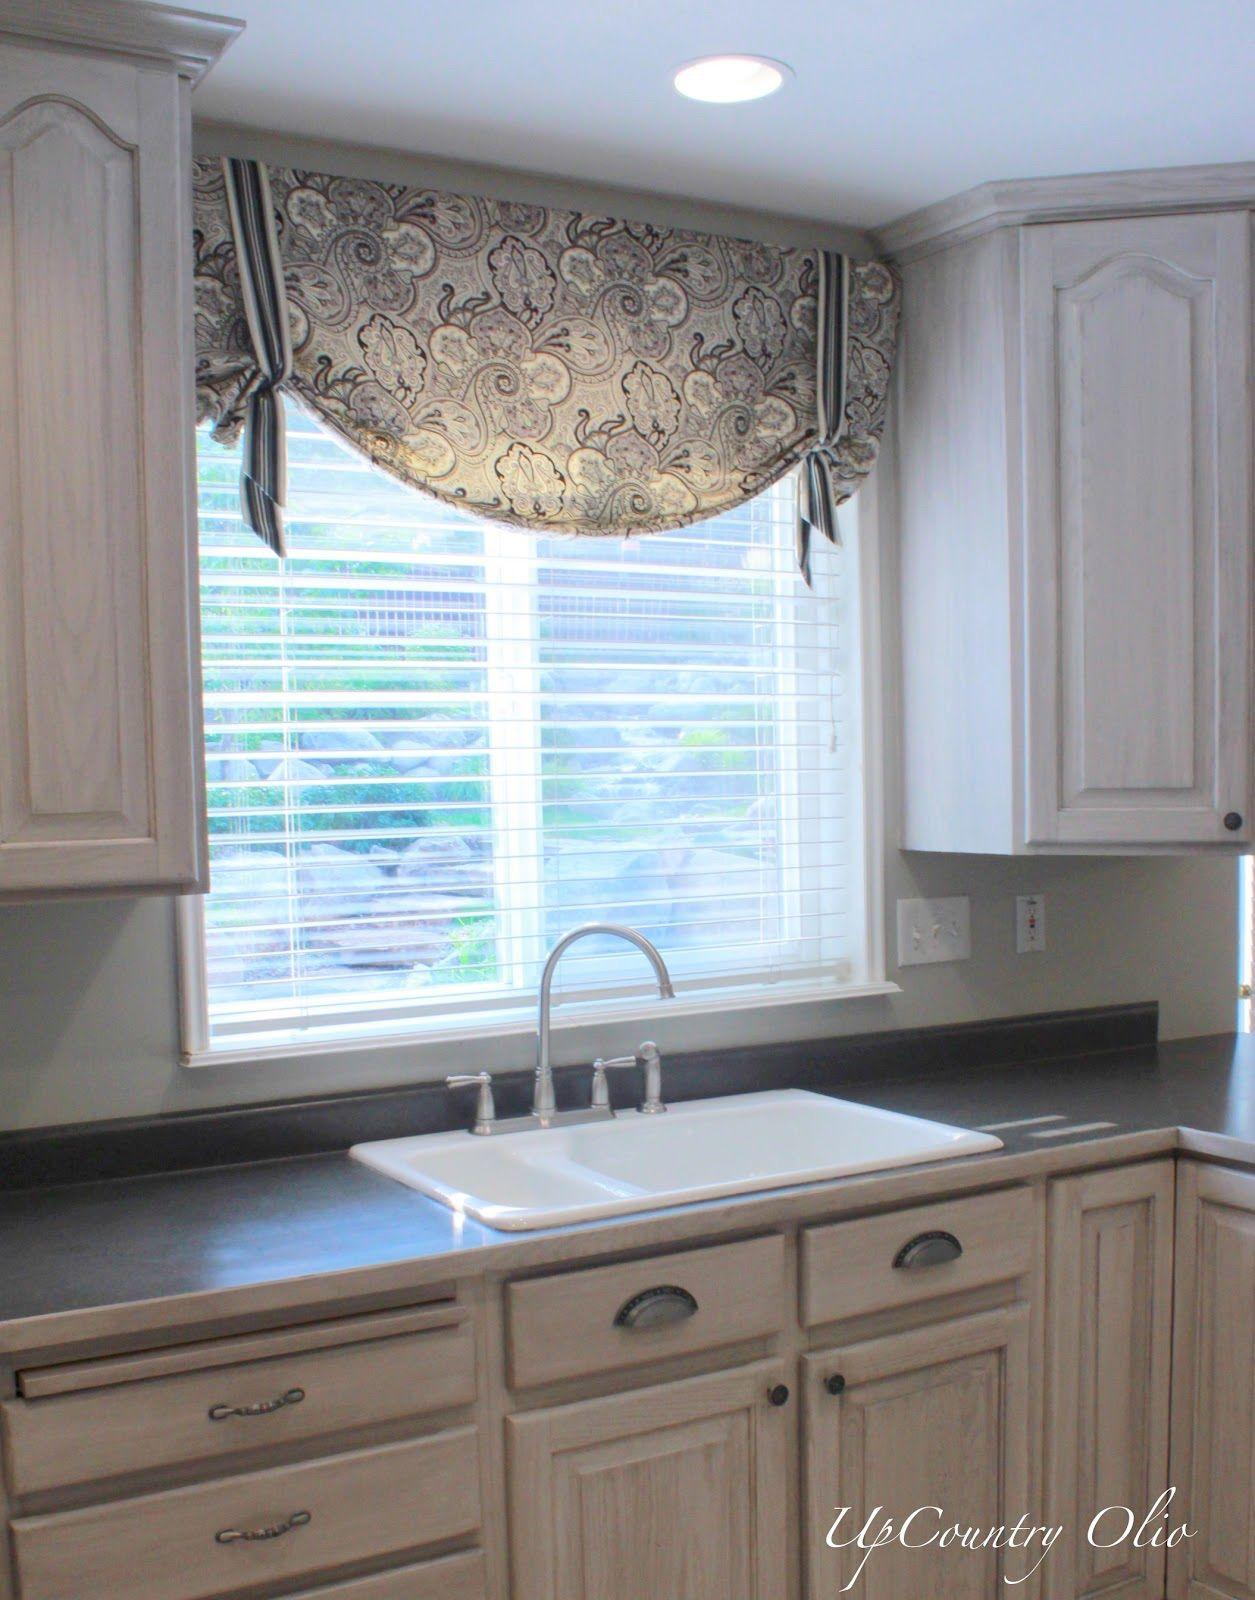 Image result for Valance balancing act: kitchen window ideas pinterest